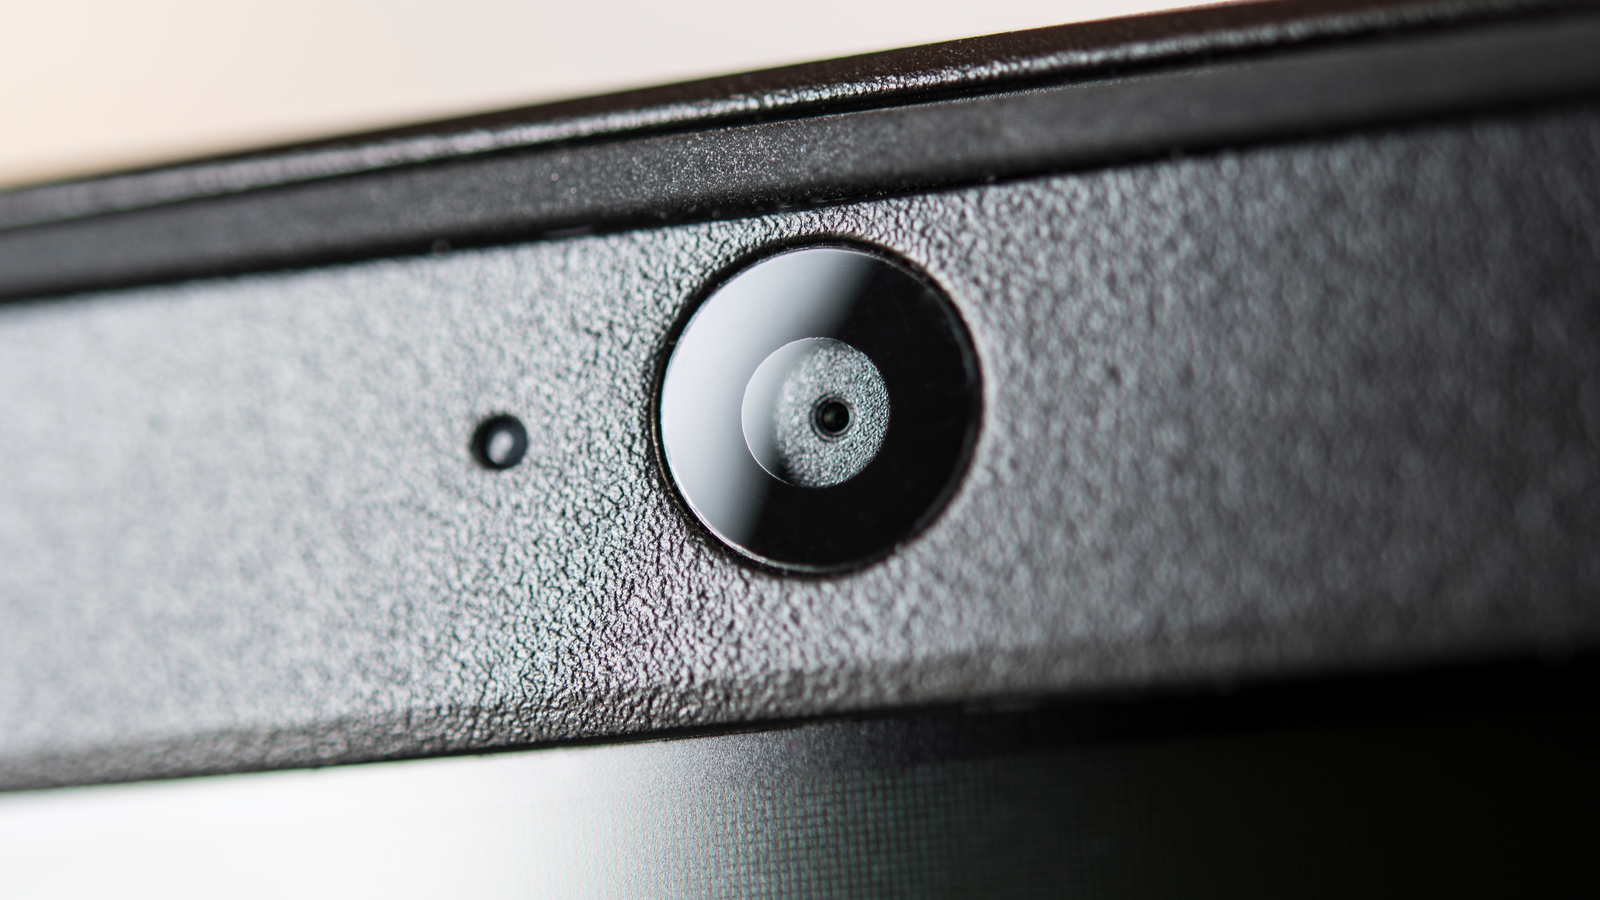 Close up shot of a built-in camera on a laptop